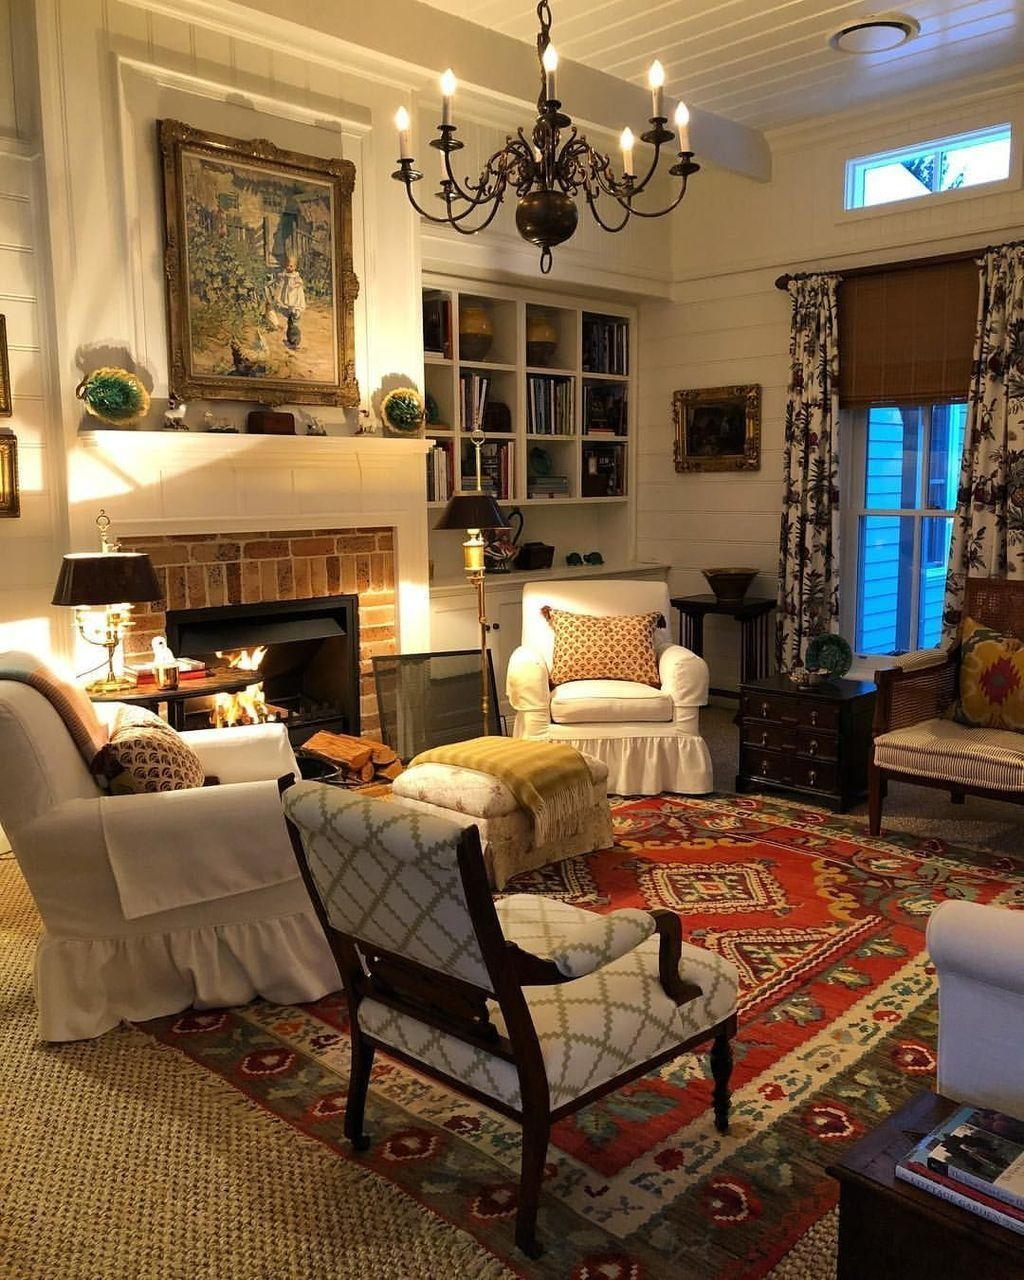 Cozy Charming Living Room In 2020 French Country Living Room Cozy Living Room Design Country Living Room